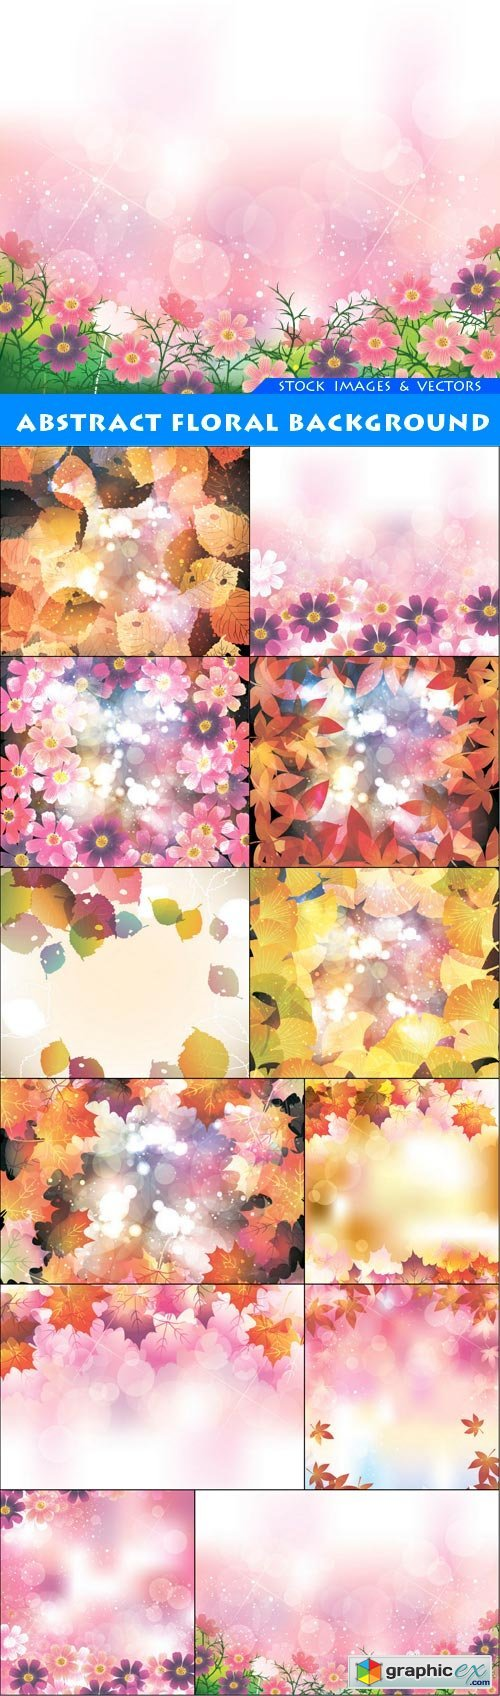 Abstract floral background 12X EPS